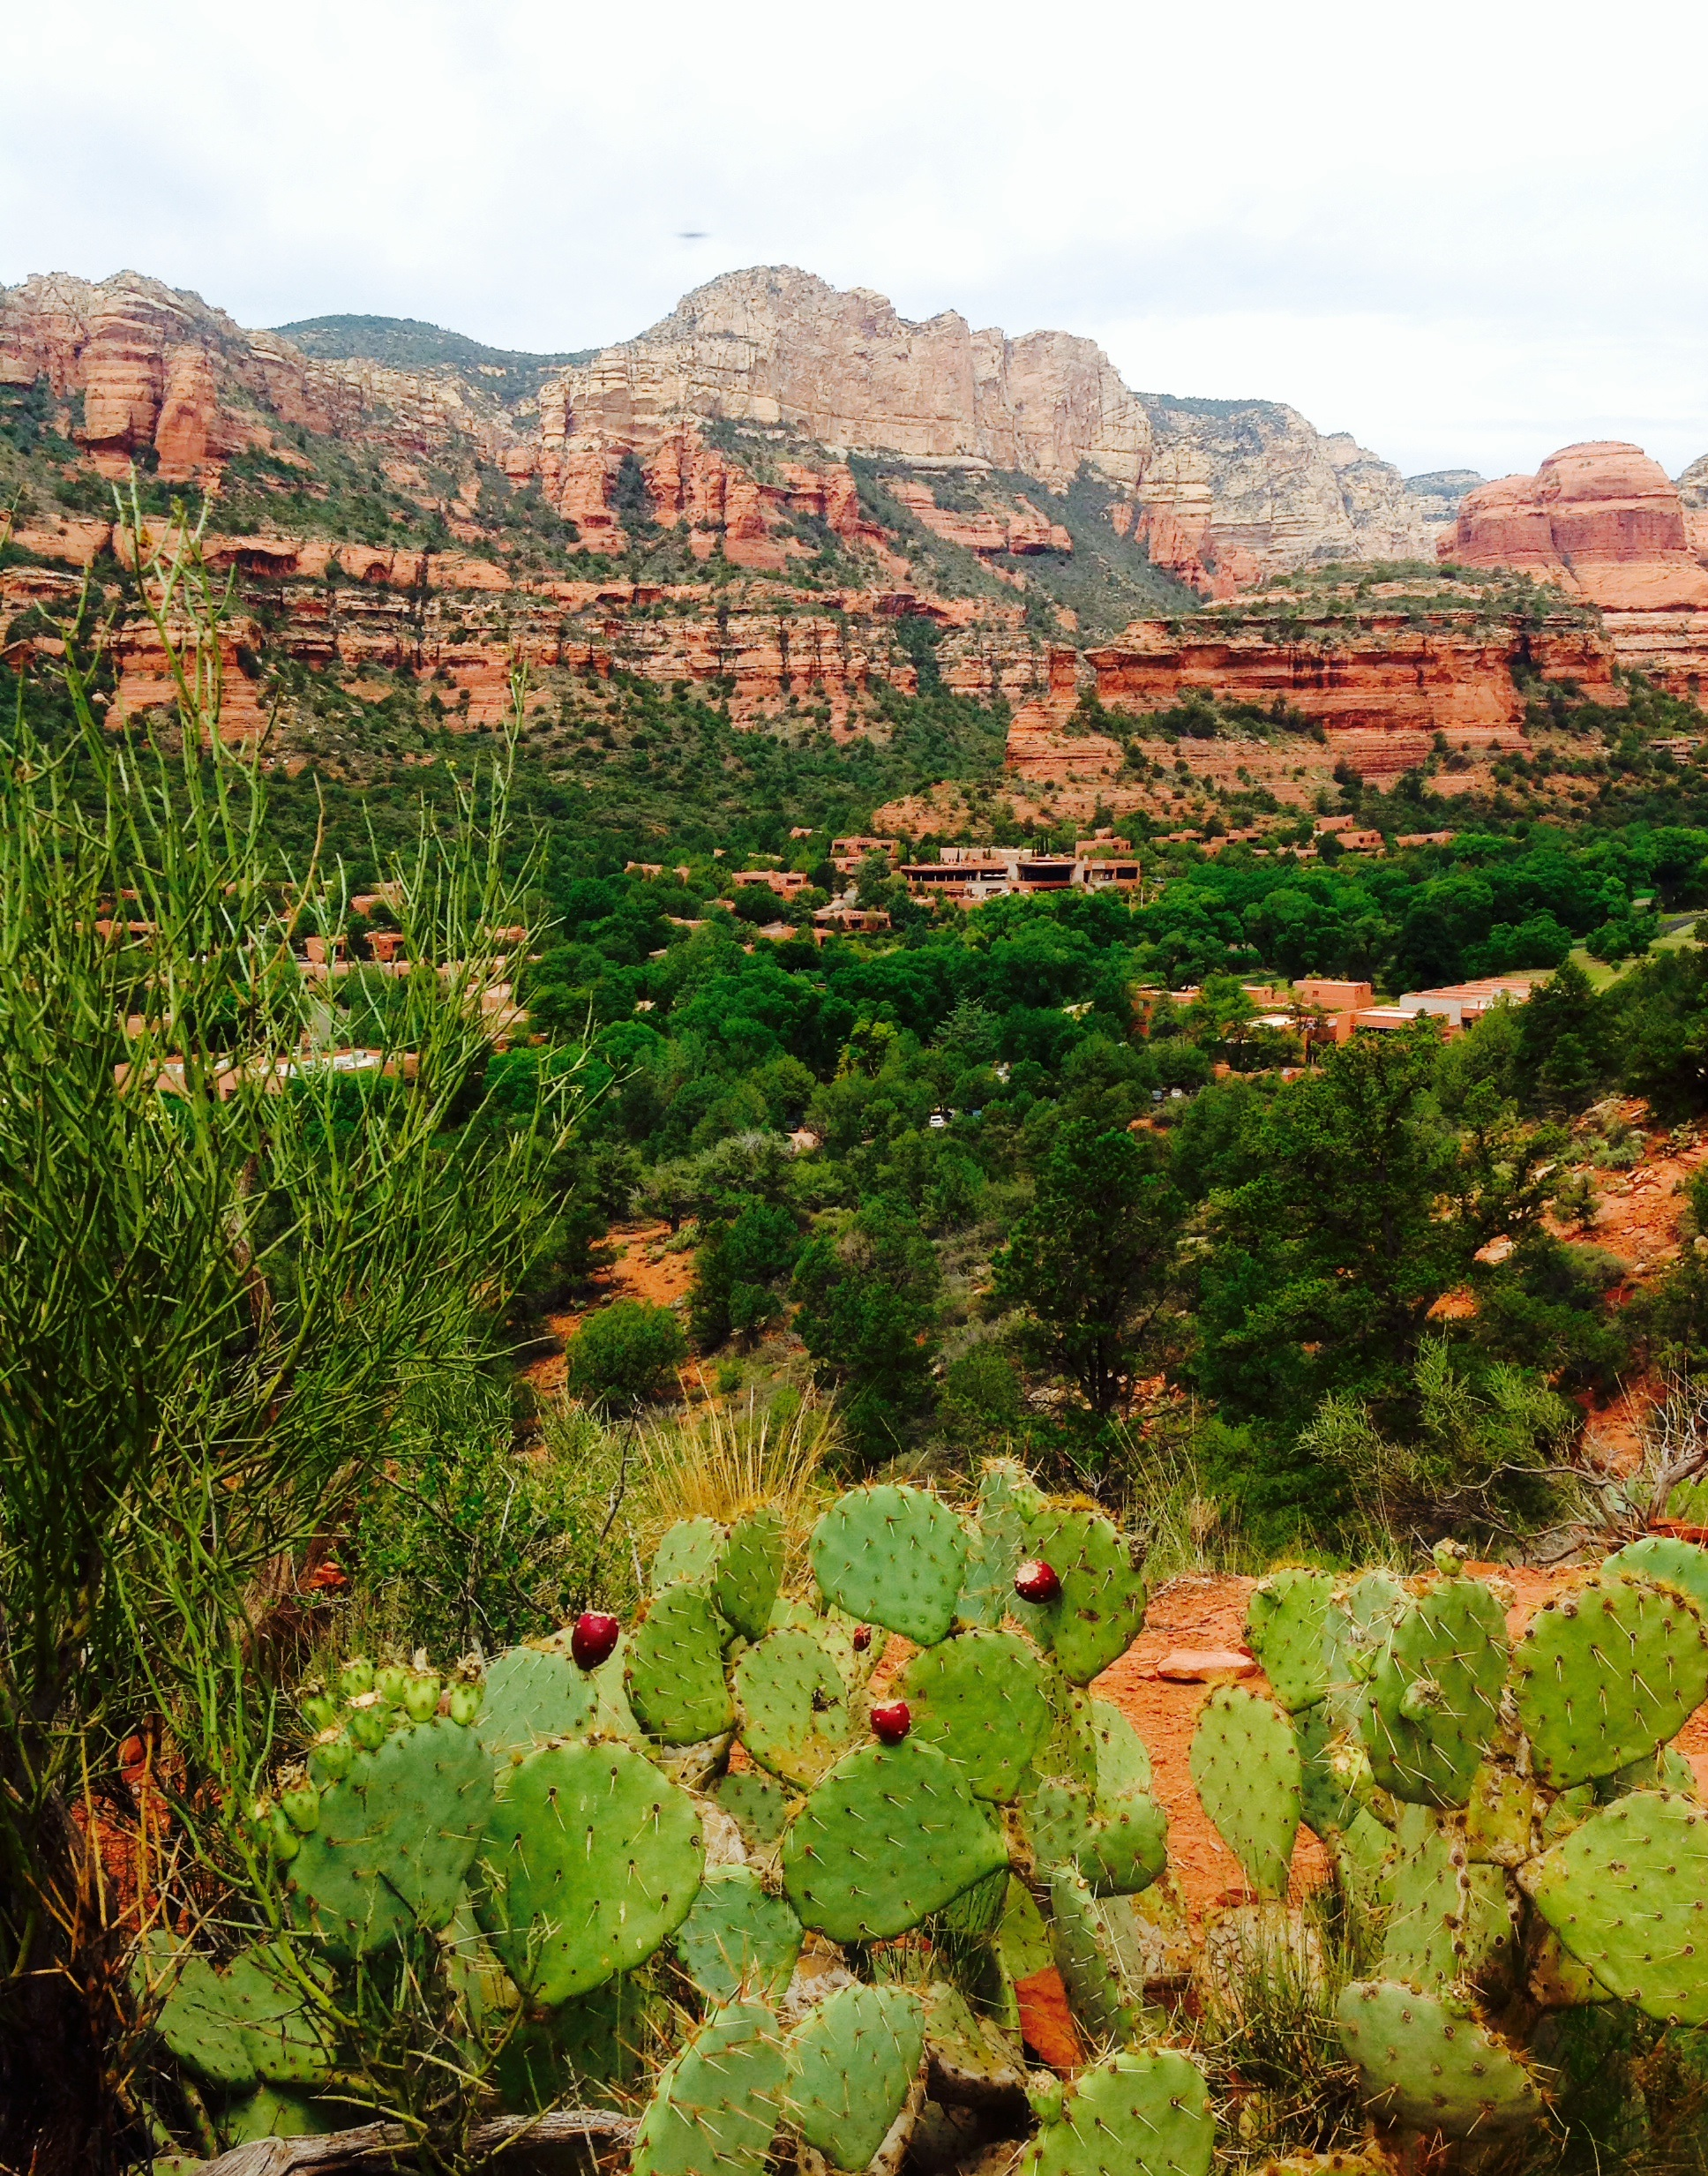 View from our hike- overlooking the property